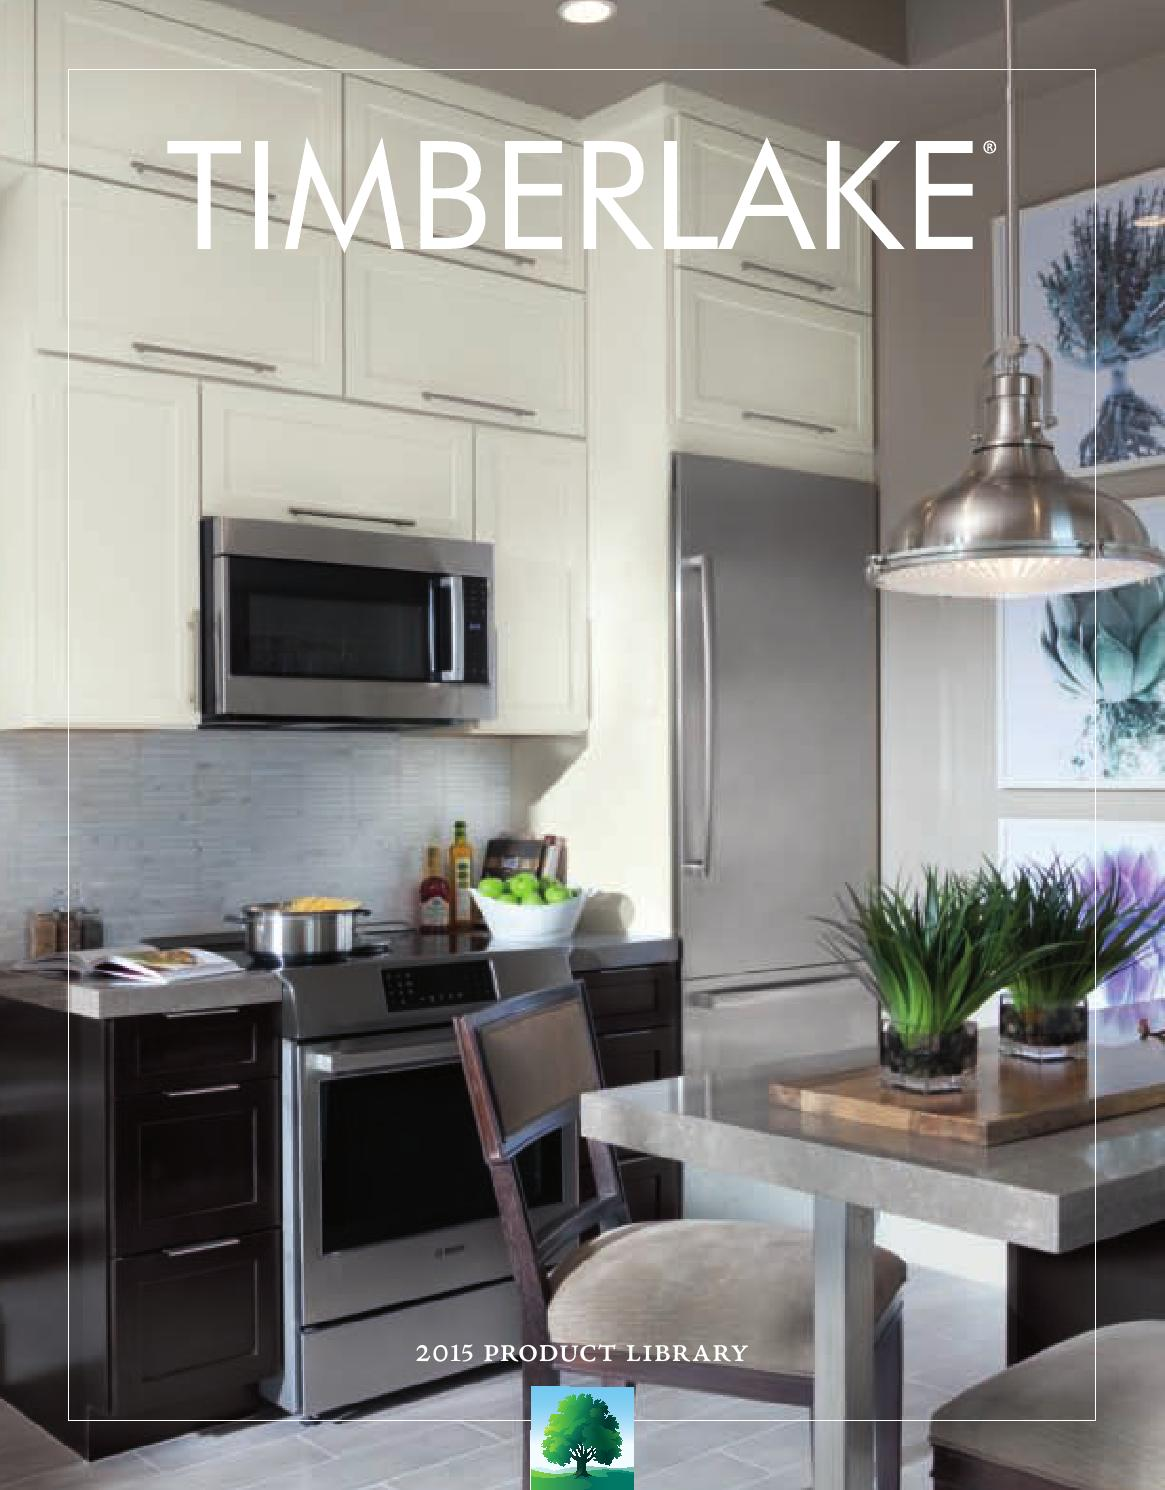 2015 Product Library By Timberlake Cabinetry By Timberlake Cabinetry   Issuu